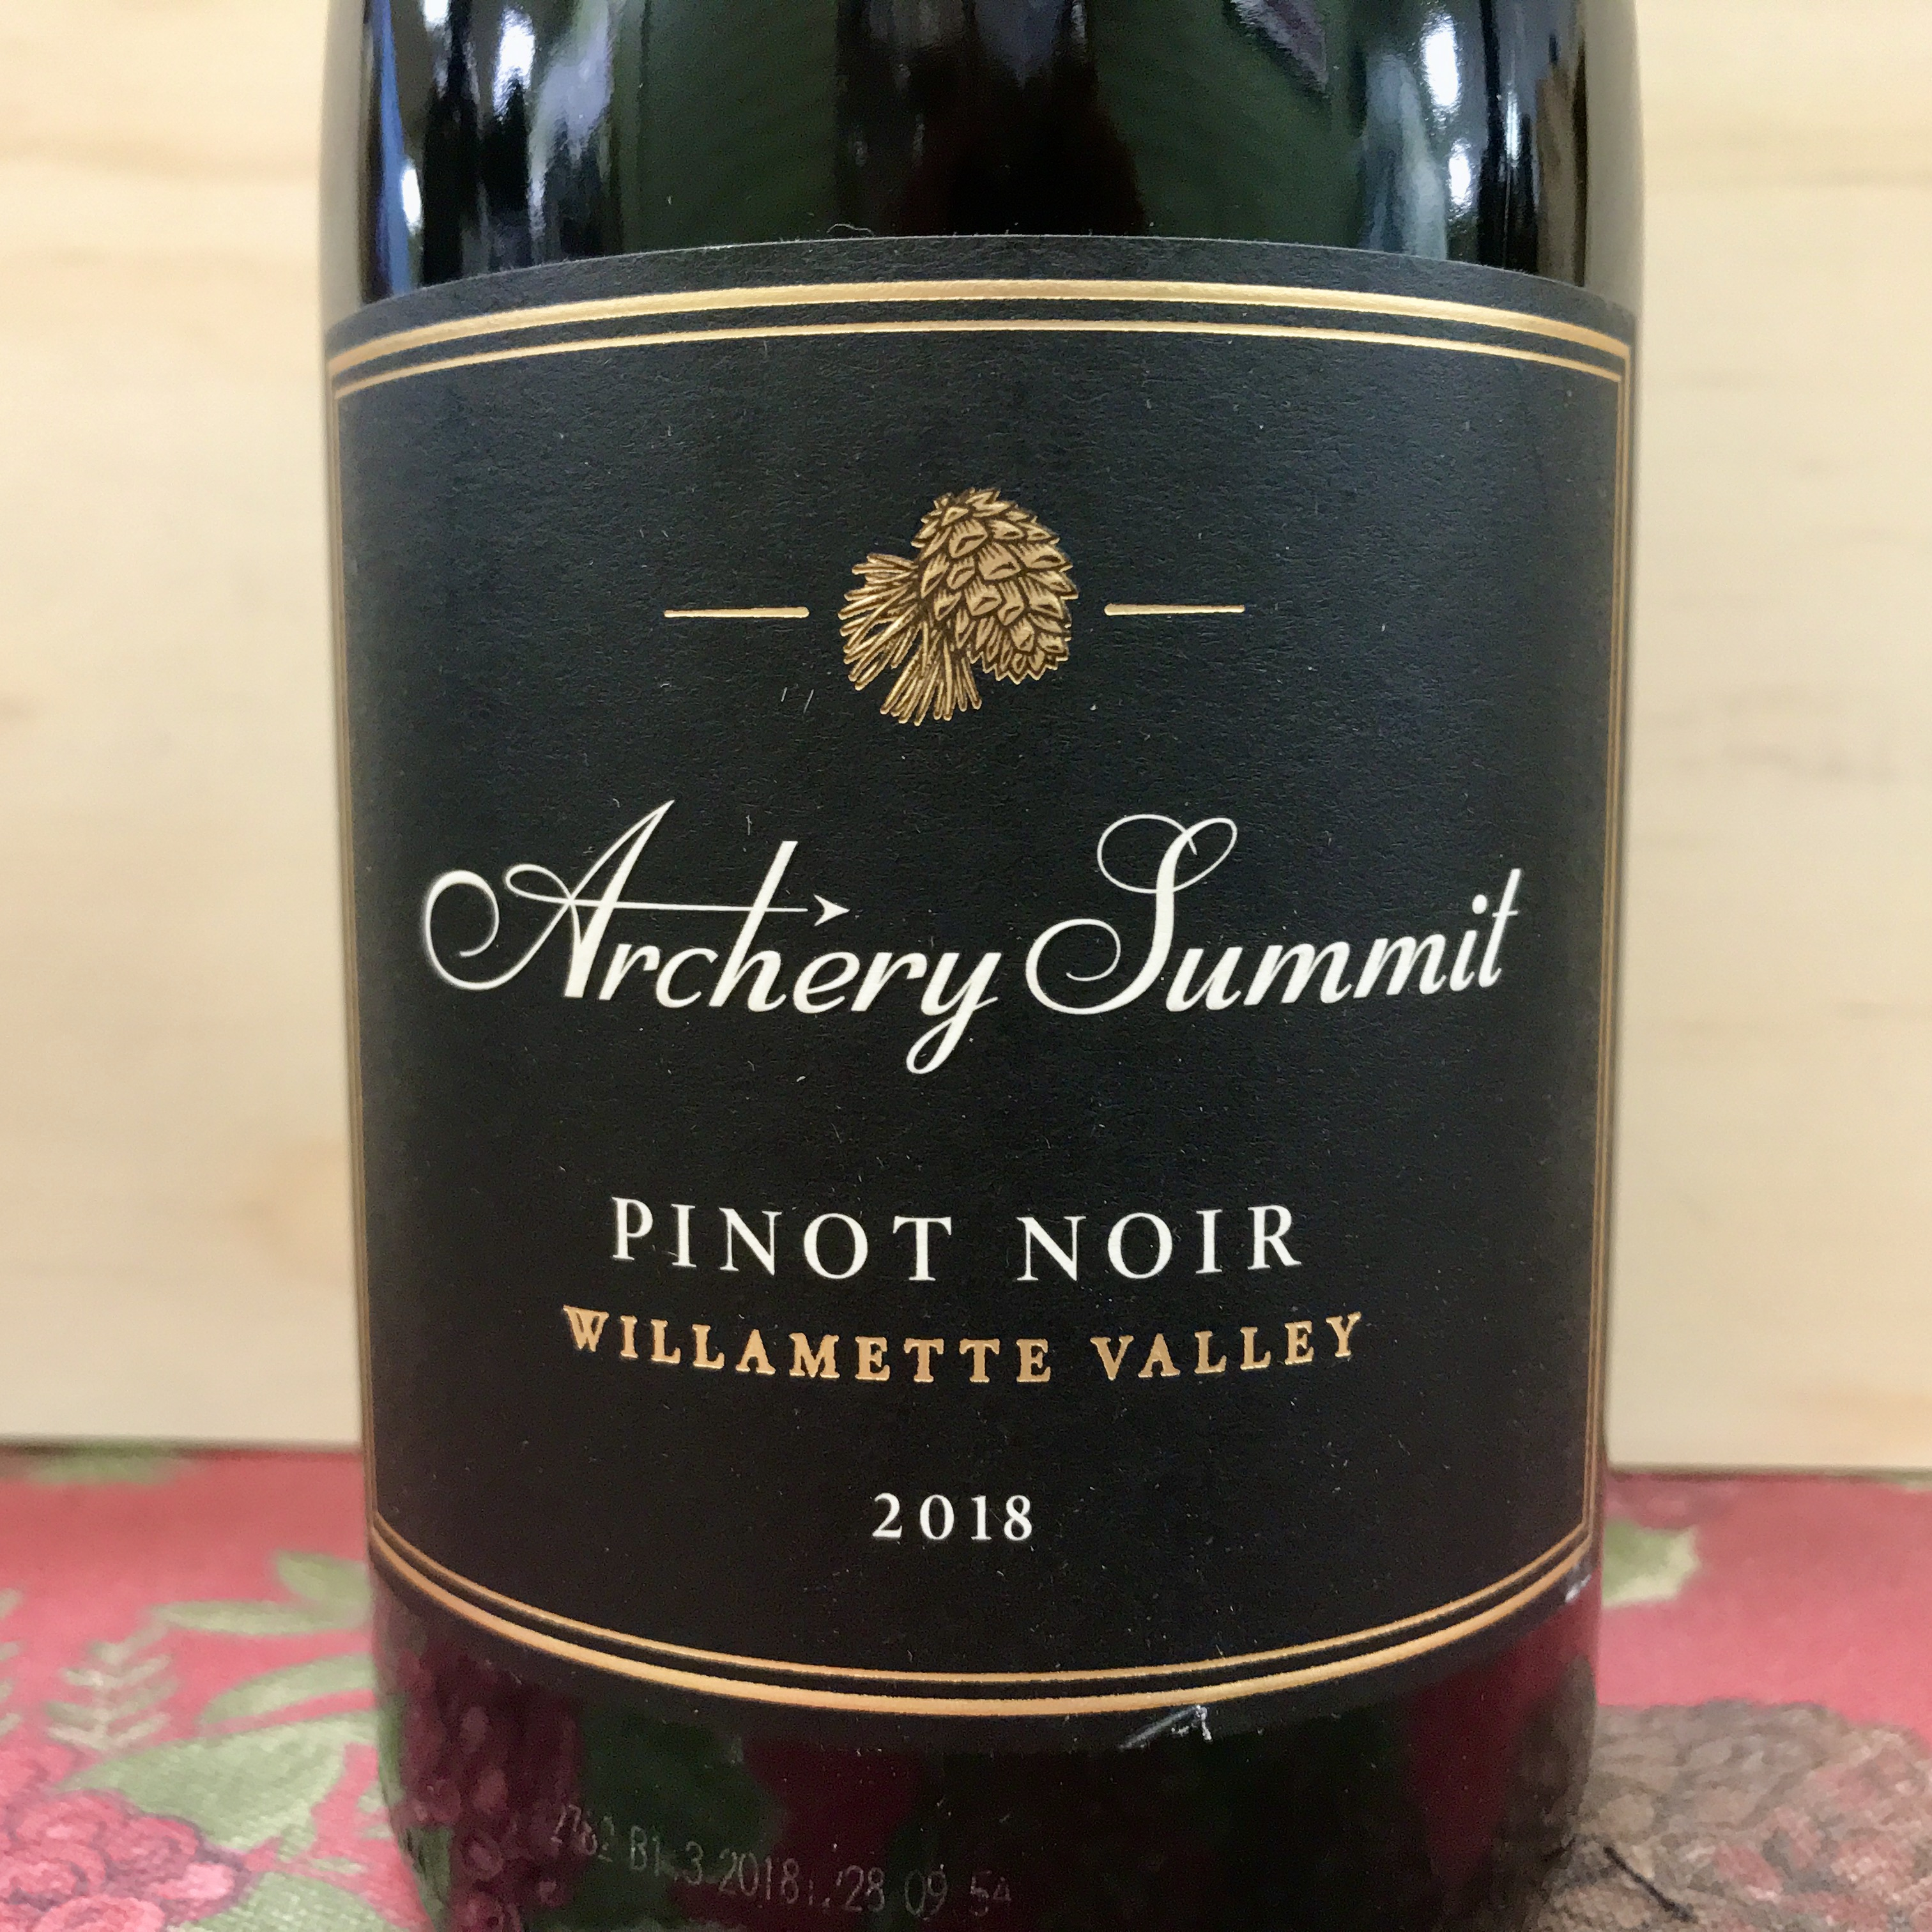 Archery Summit Pinot Noir Wilamette Valley 2018